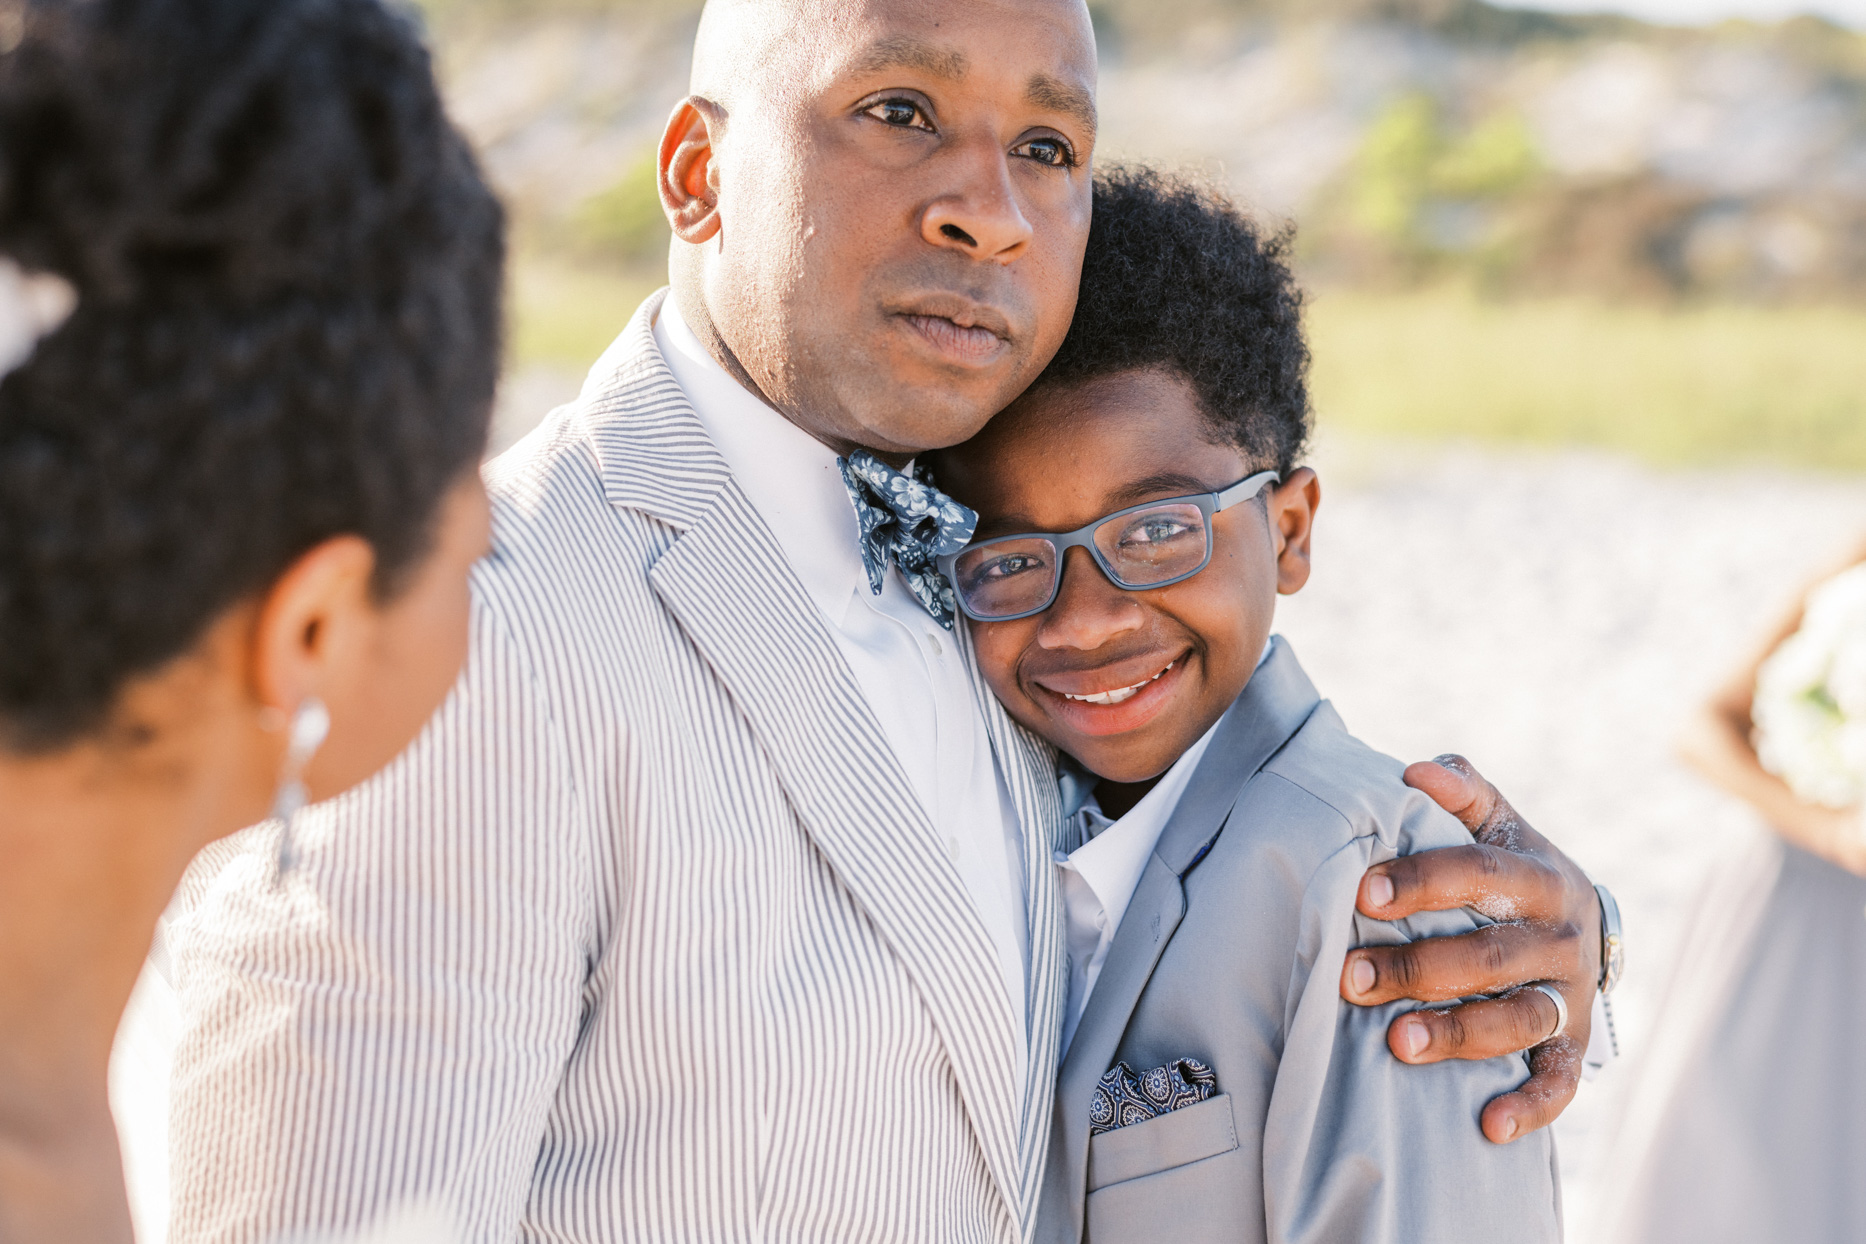 groom and son hugging at wedding ceremony